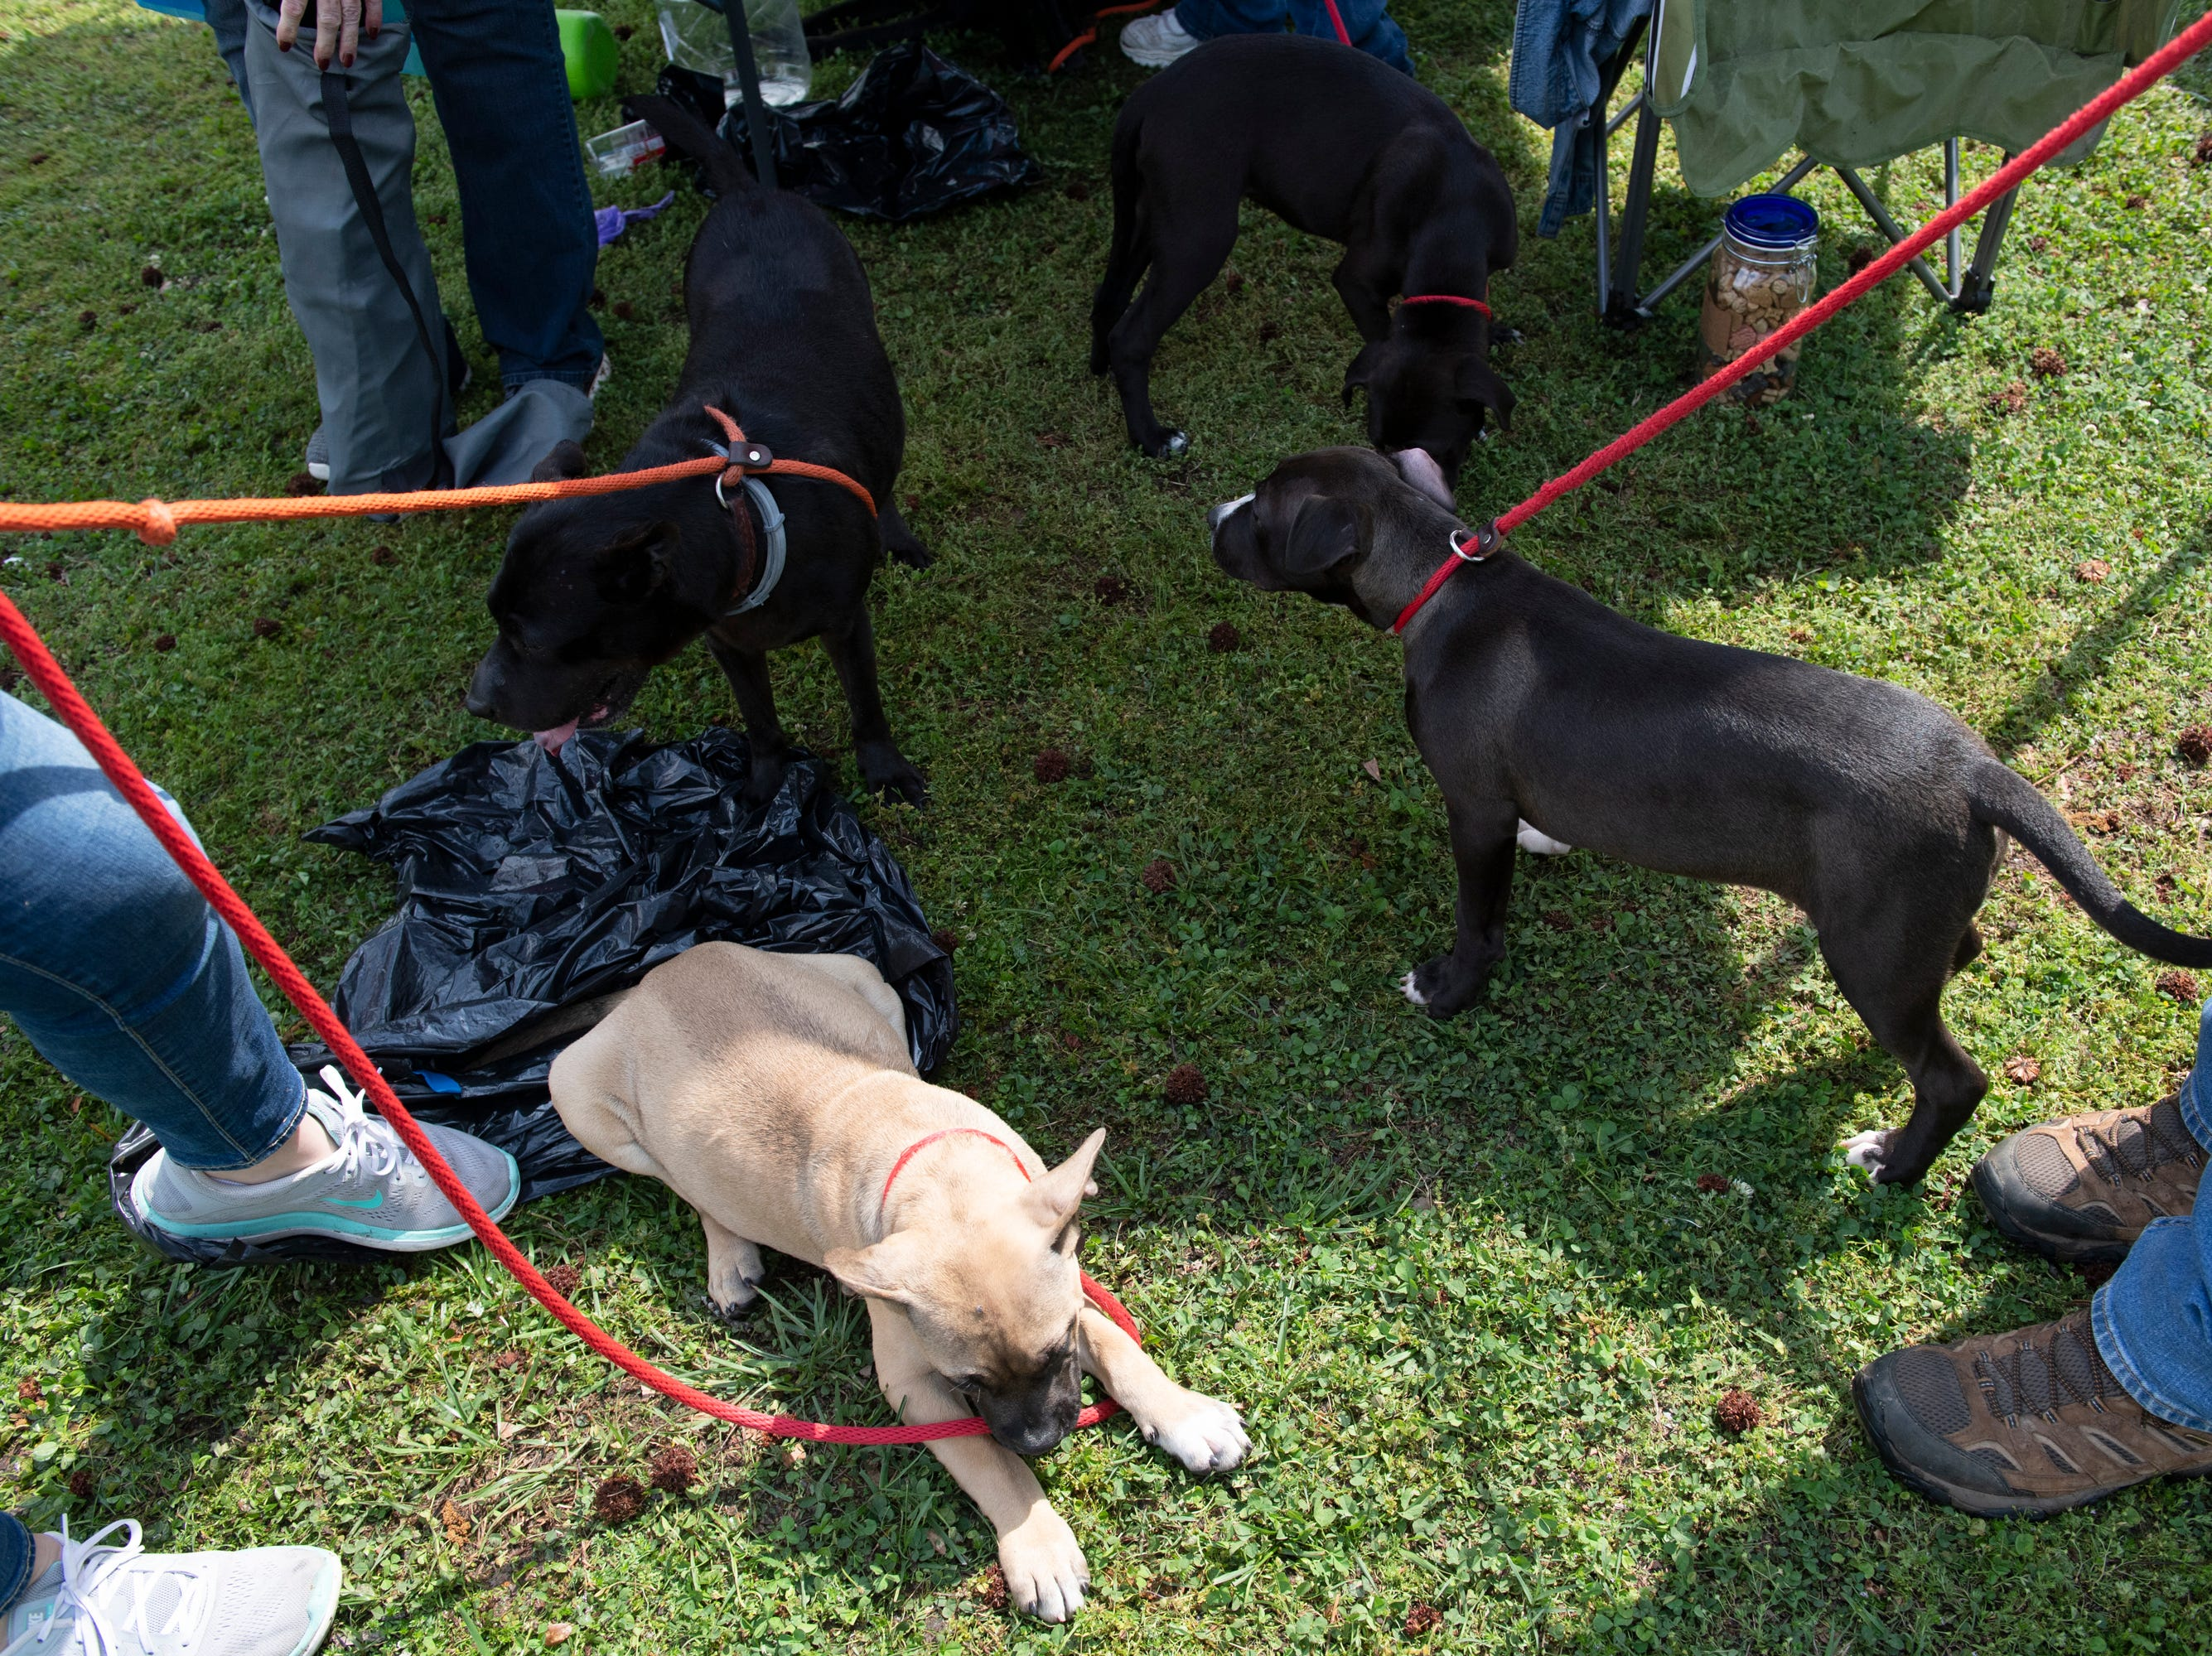 Concerned Citizens for Animals (CCA) shows dogs available for adoption at the Paws for a Cause event in Simpsonville City Park Saturday, April 13, 2019. The event was a fundraiser for CCA.